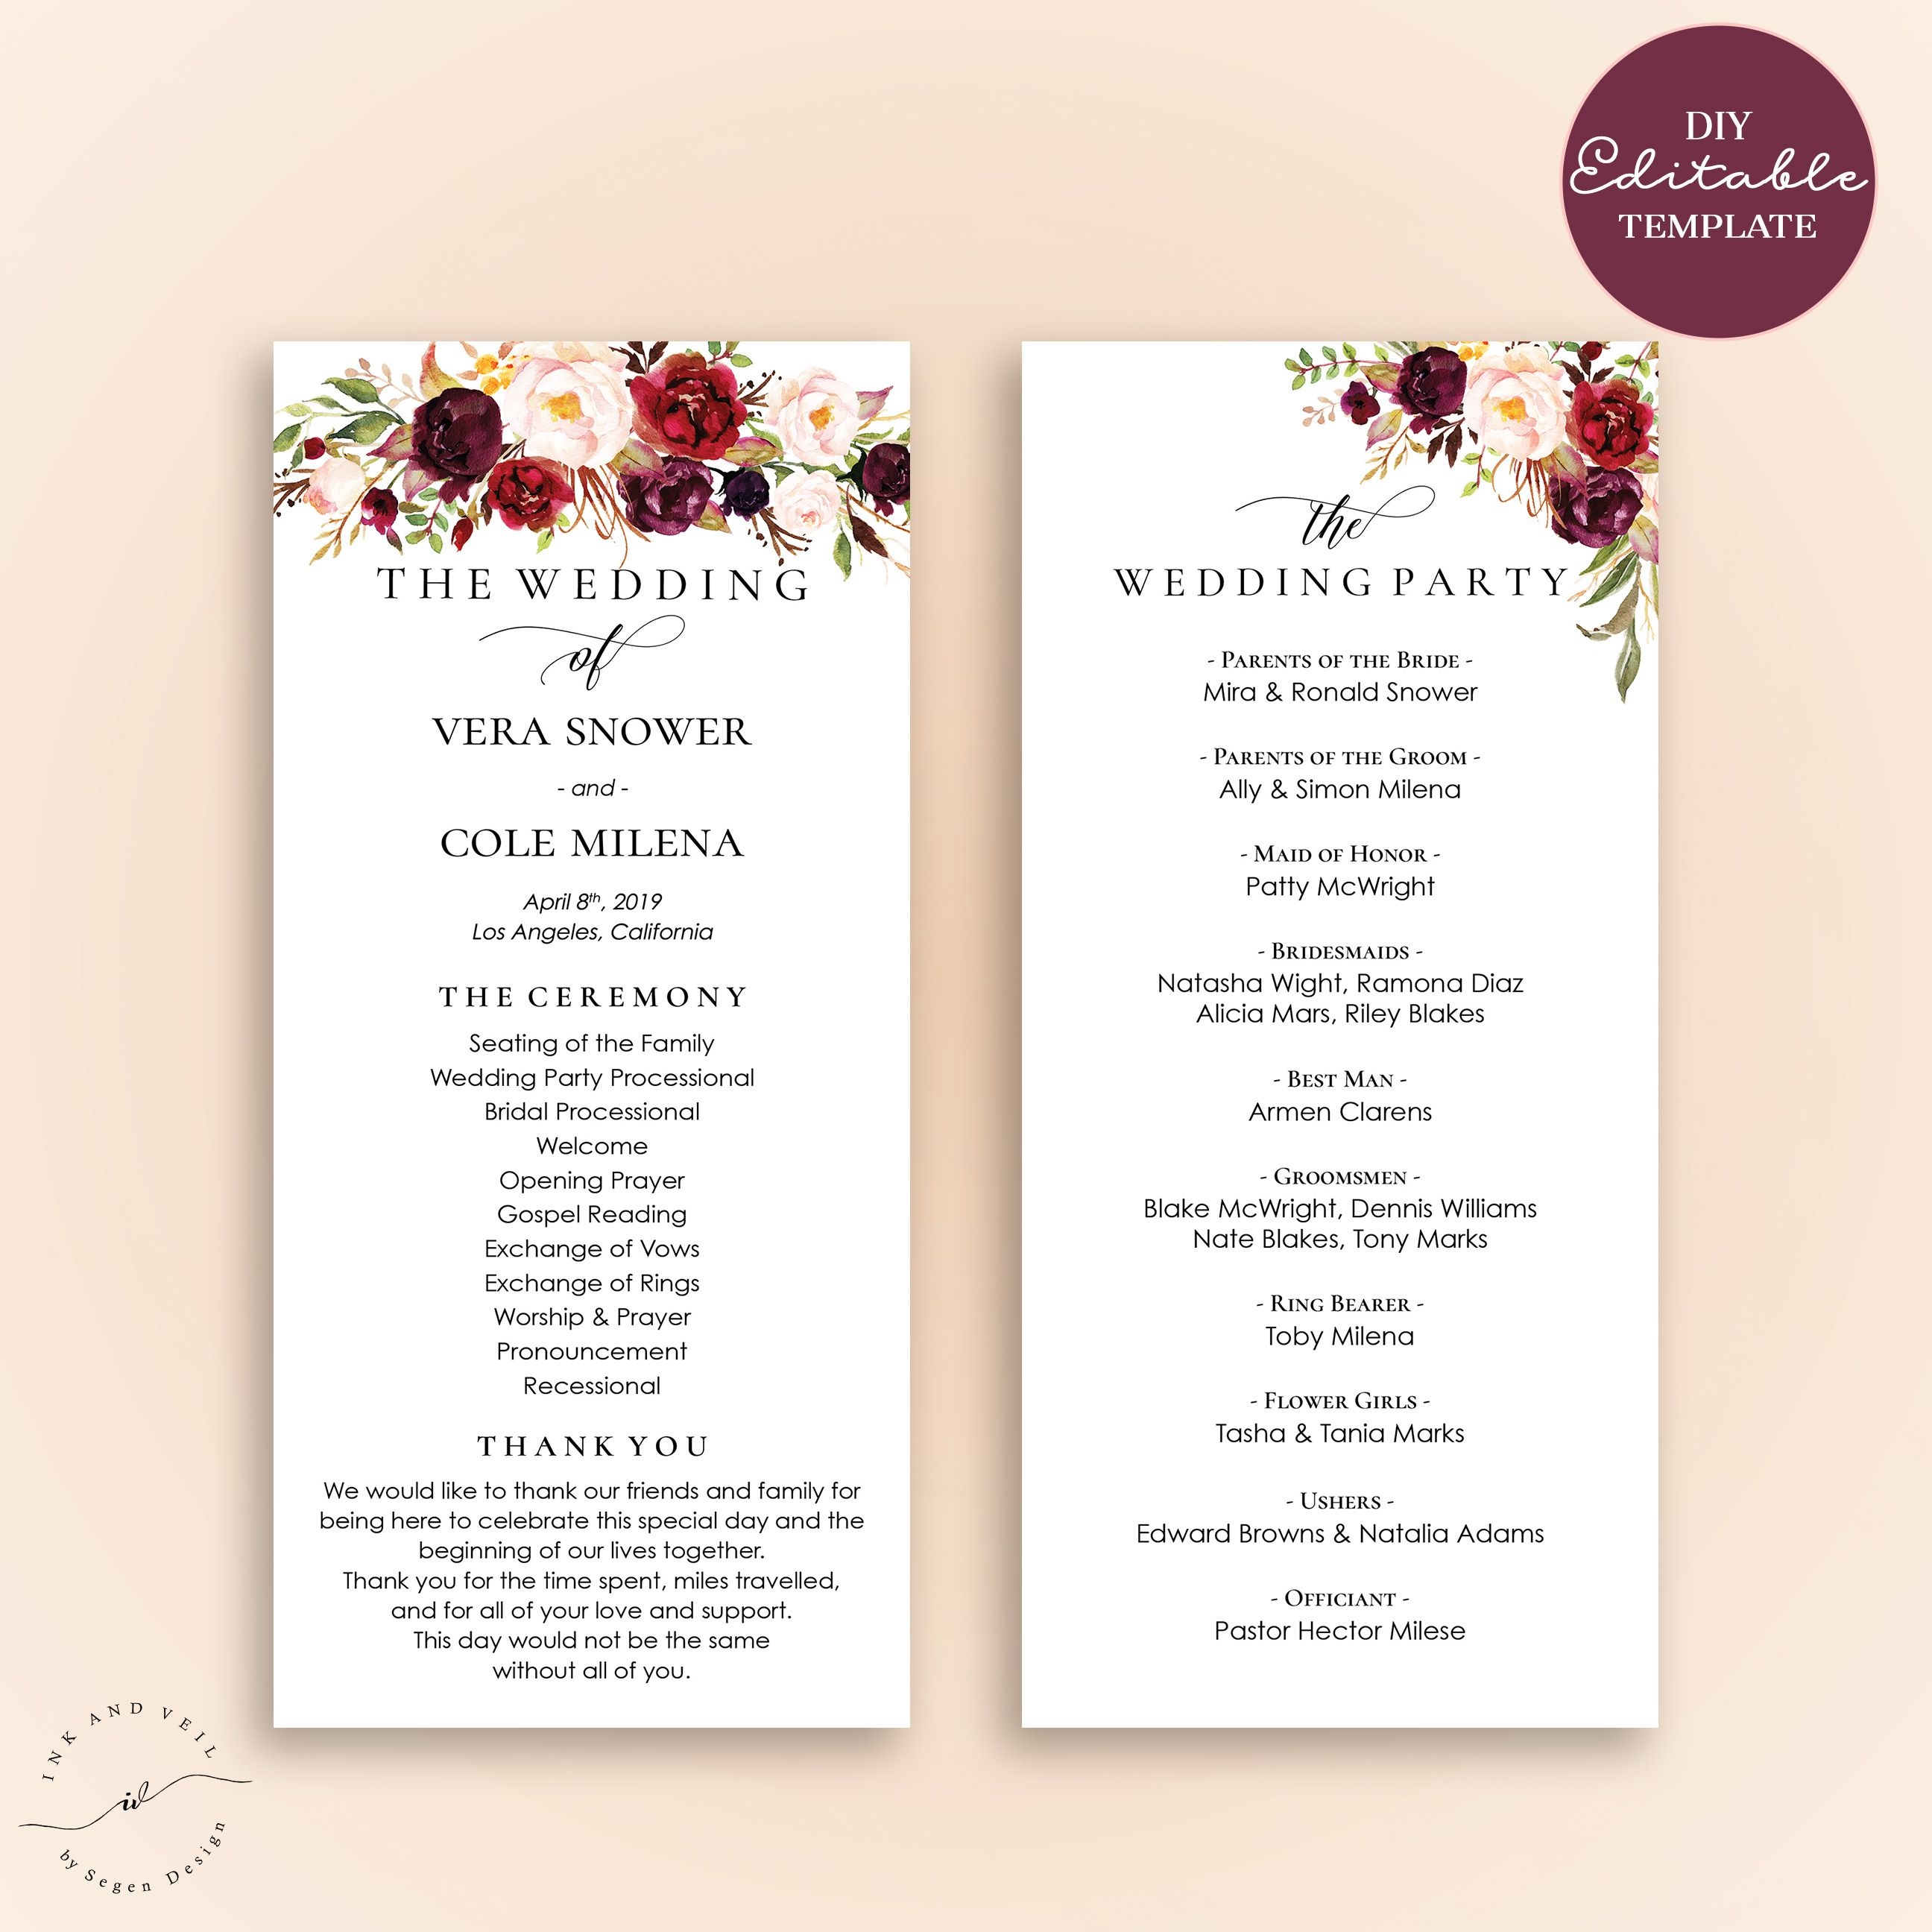 Sample Of Wedding Program Wedding Programs Examples On Wedding